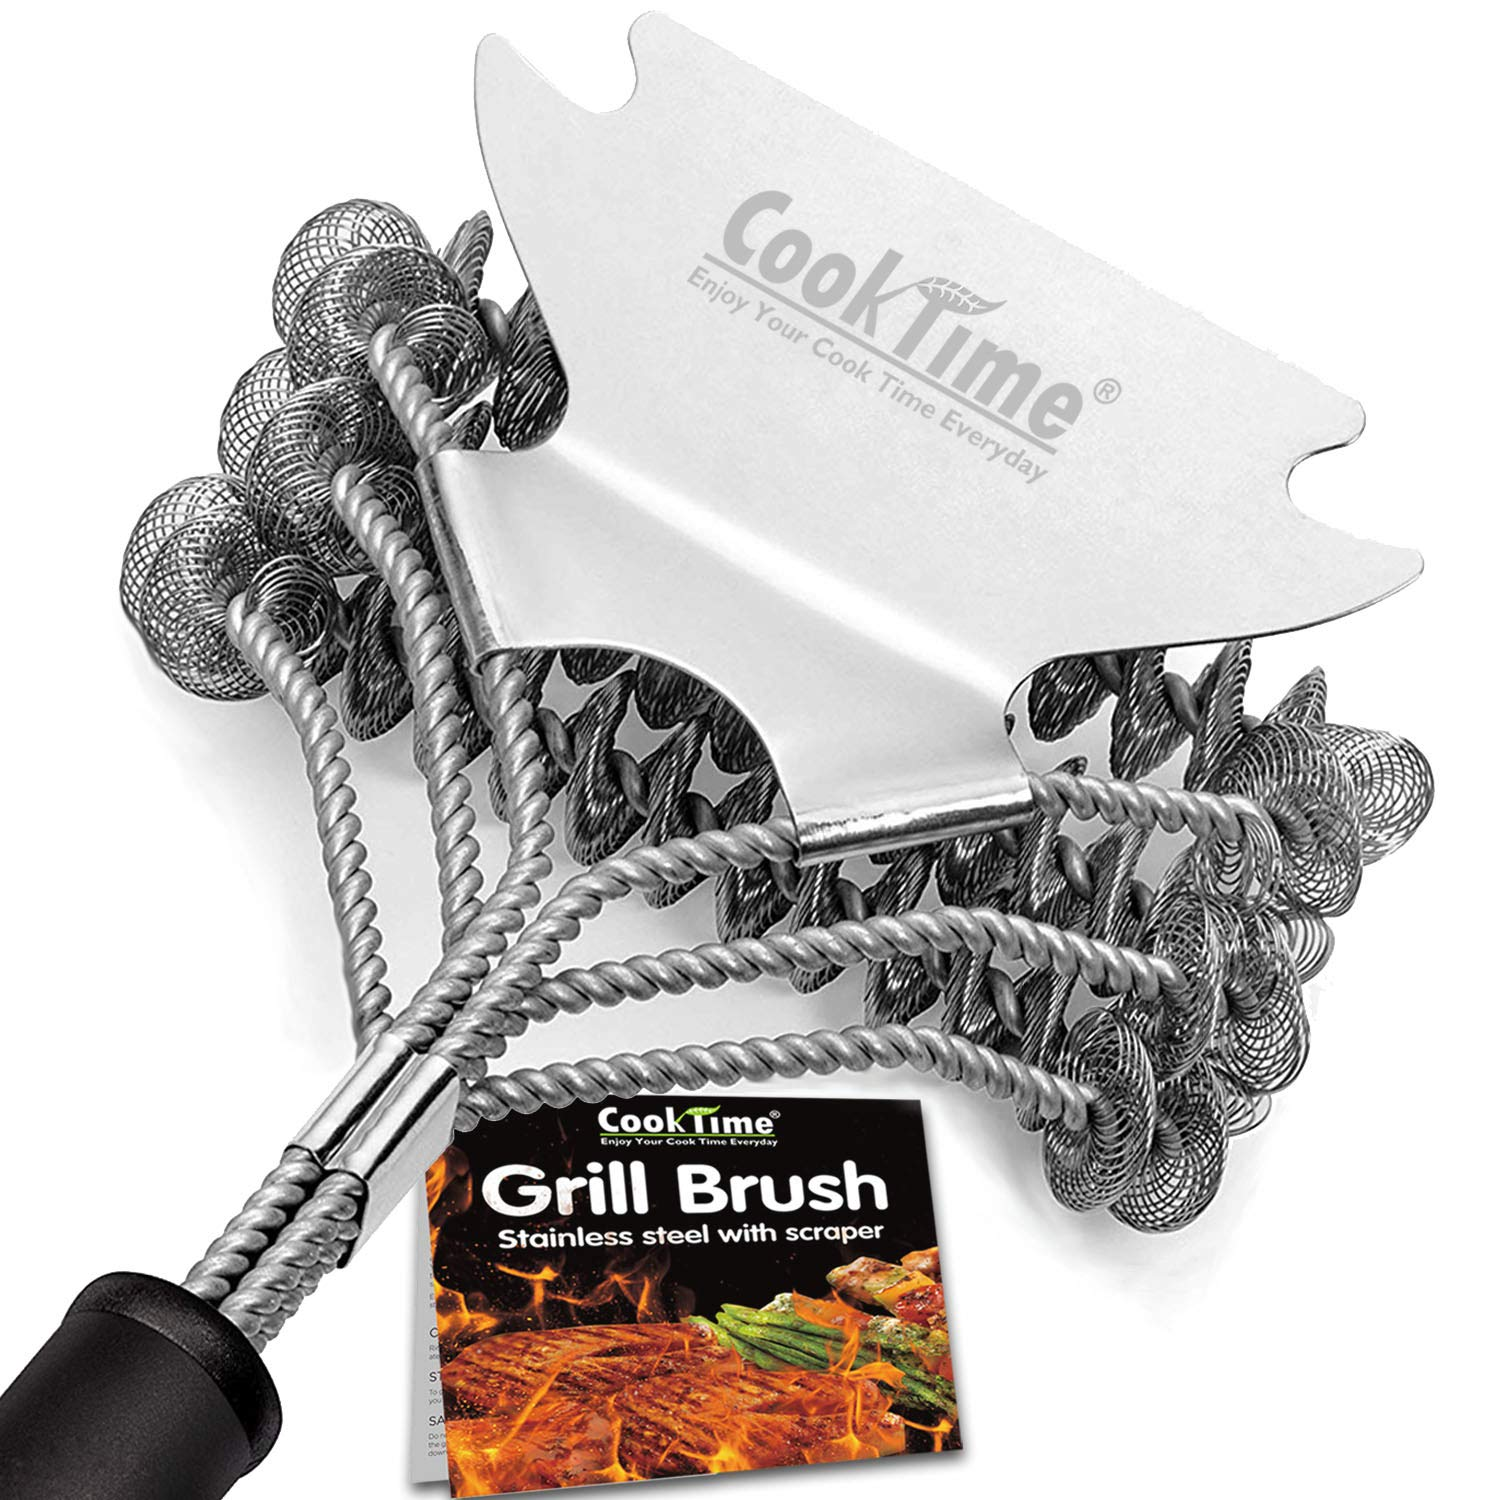 Cook Time Safe Grill Brush - Bristle Free BBQ Grill Cleaner/Scraper - 18'' Stainless Steel Grill Cleaning Scrubber,Great BBQ Accessories for Clean All Grill Grates by Cook Time (Image #1)